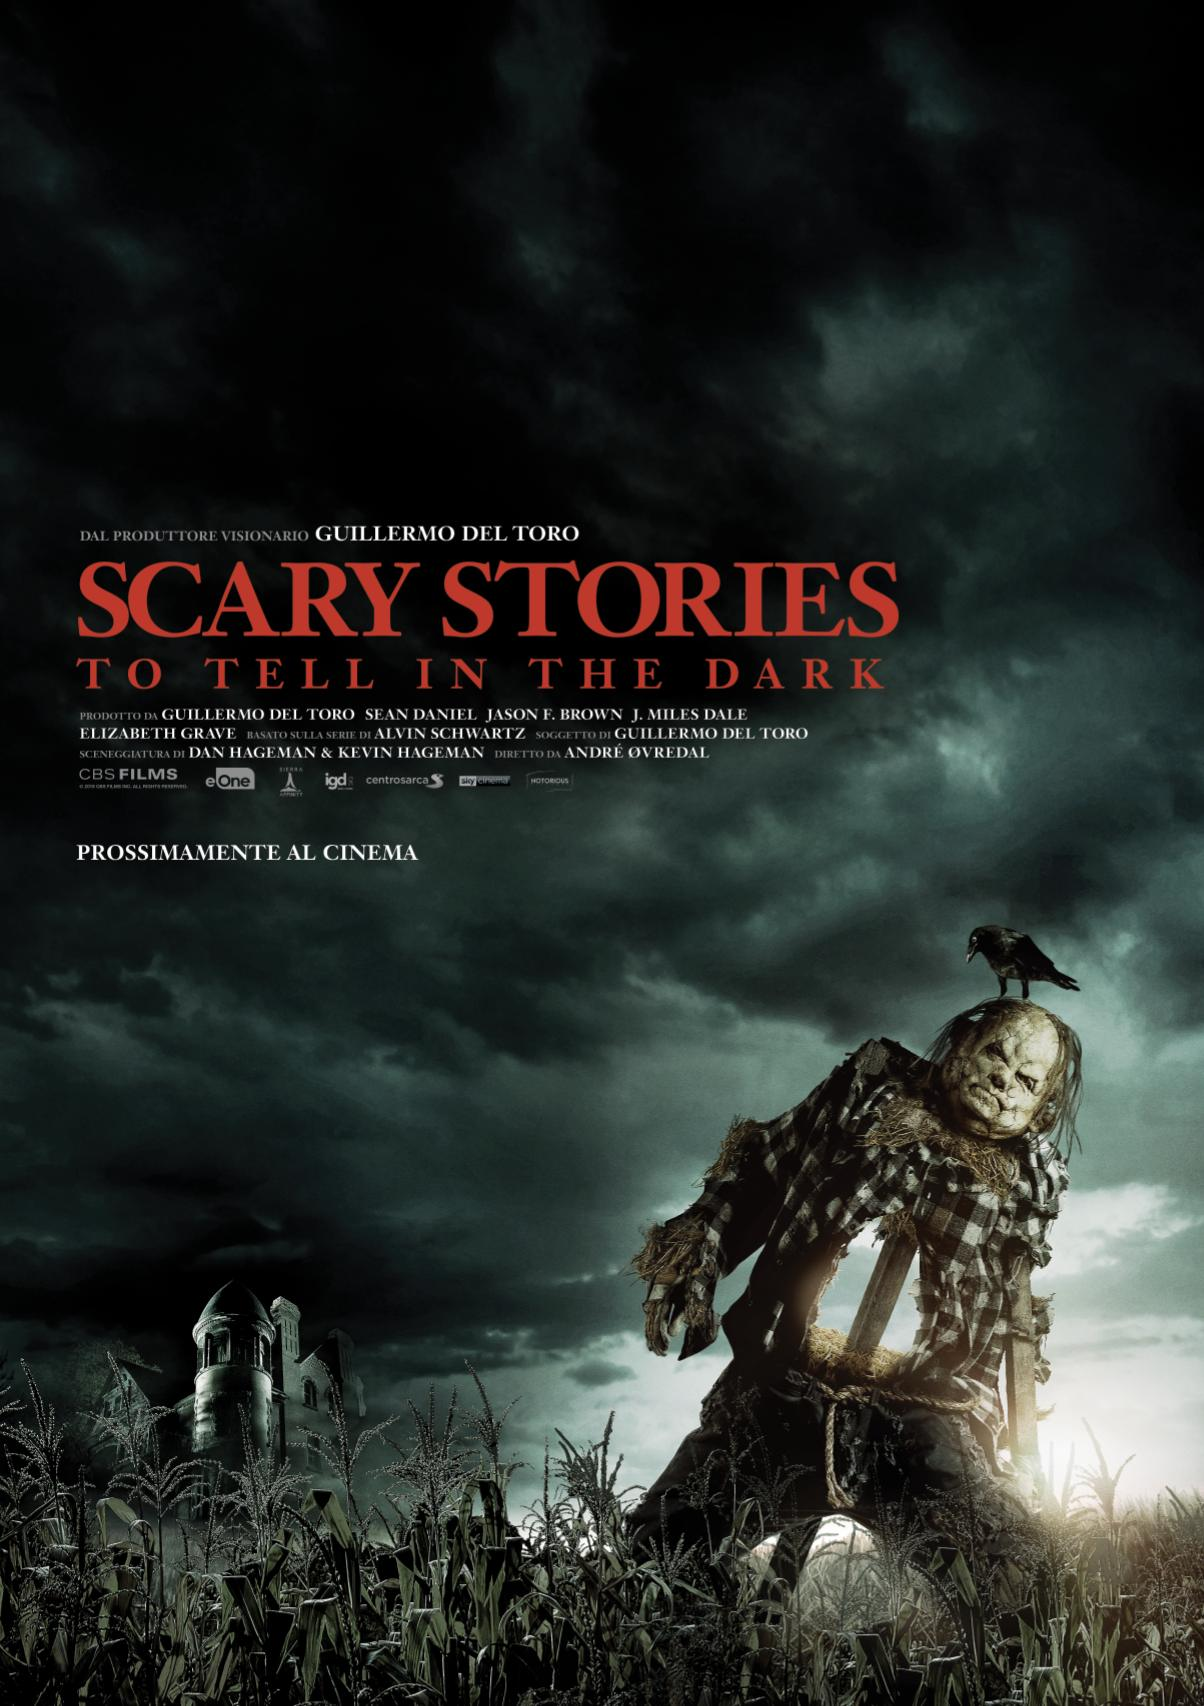 SCARY STORIES TO TELL IN THE DARK prodotto da GUILLERMO DEL TORO